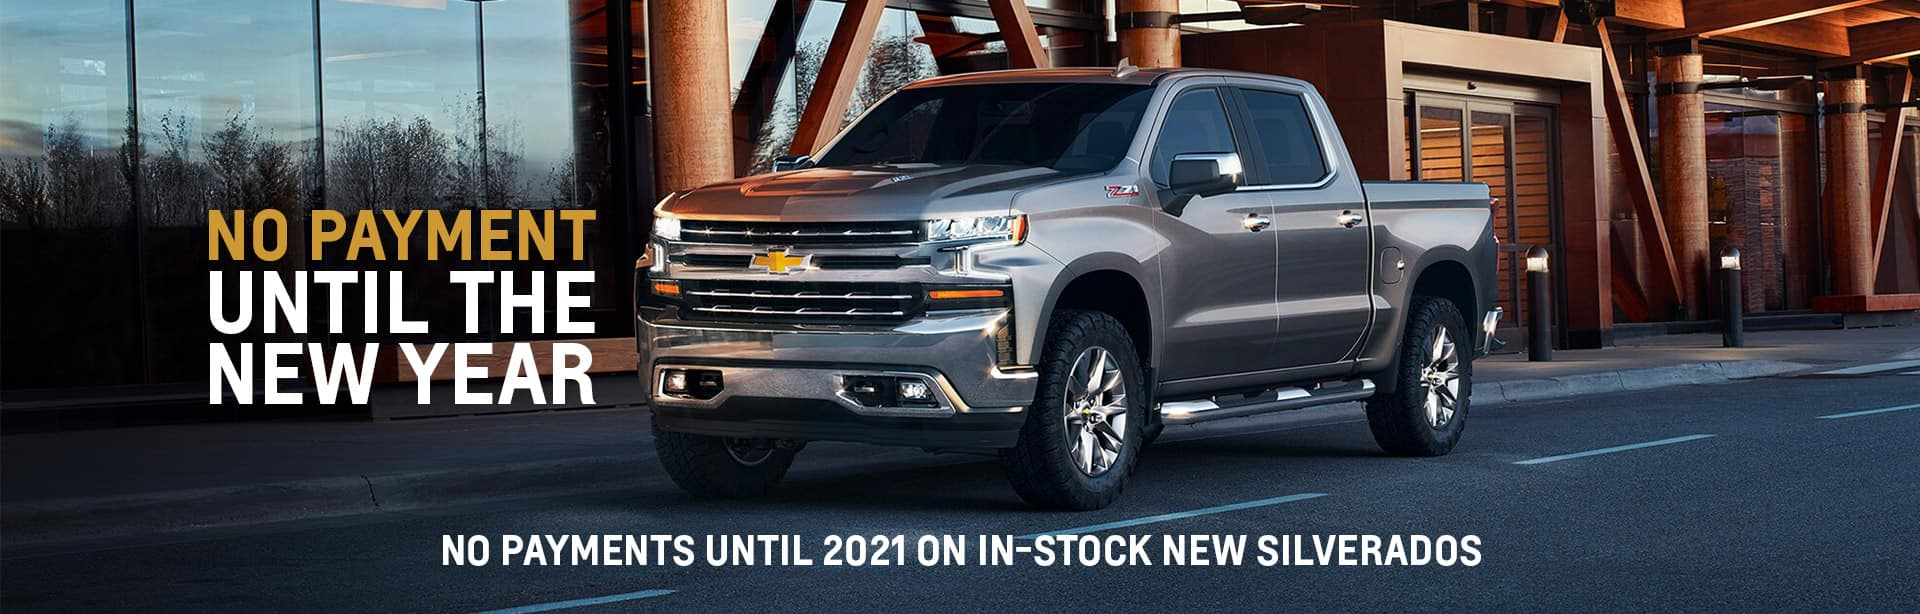 No Payments on New in-stock Silverado until 2021 at York Chevrolet in Brazil.